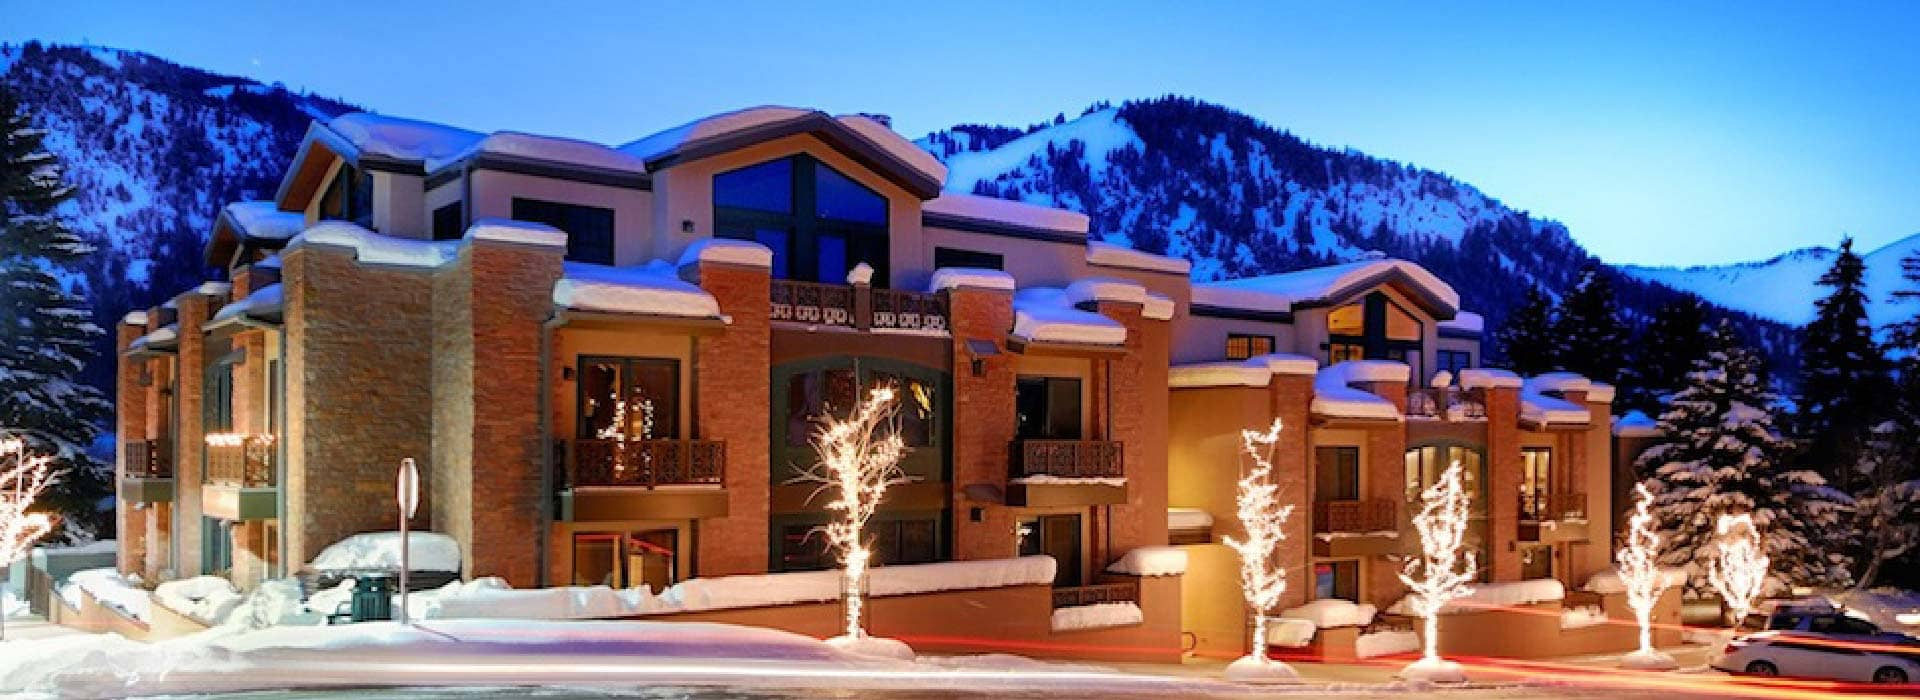 Sun valley vacation home condo rentals sun valley for Vacation mansions